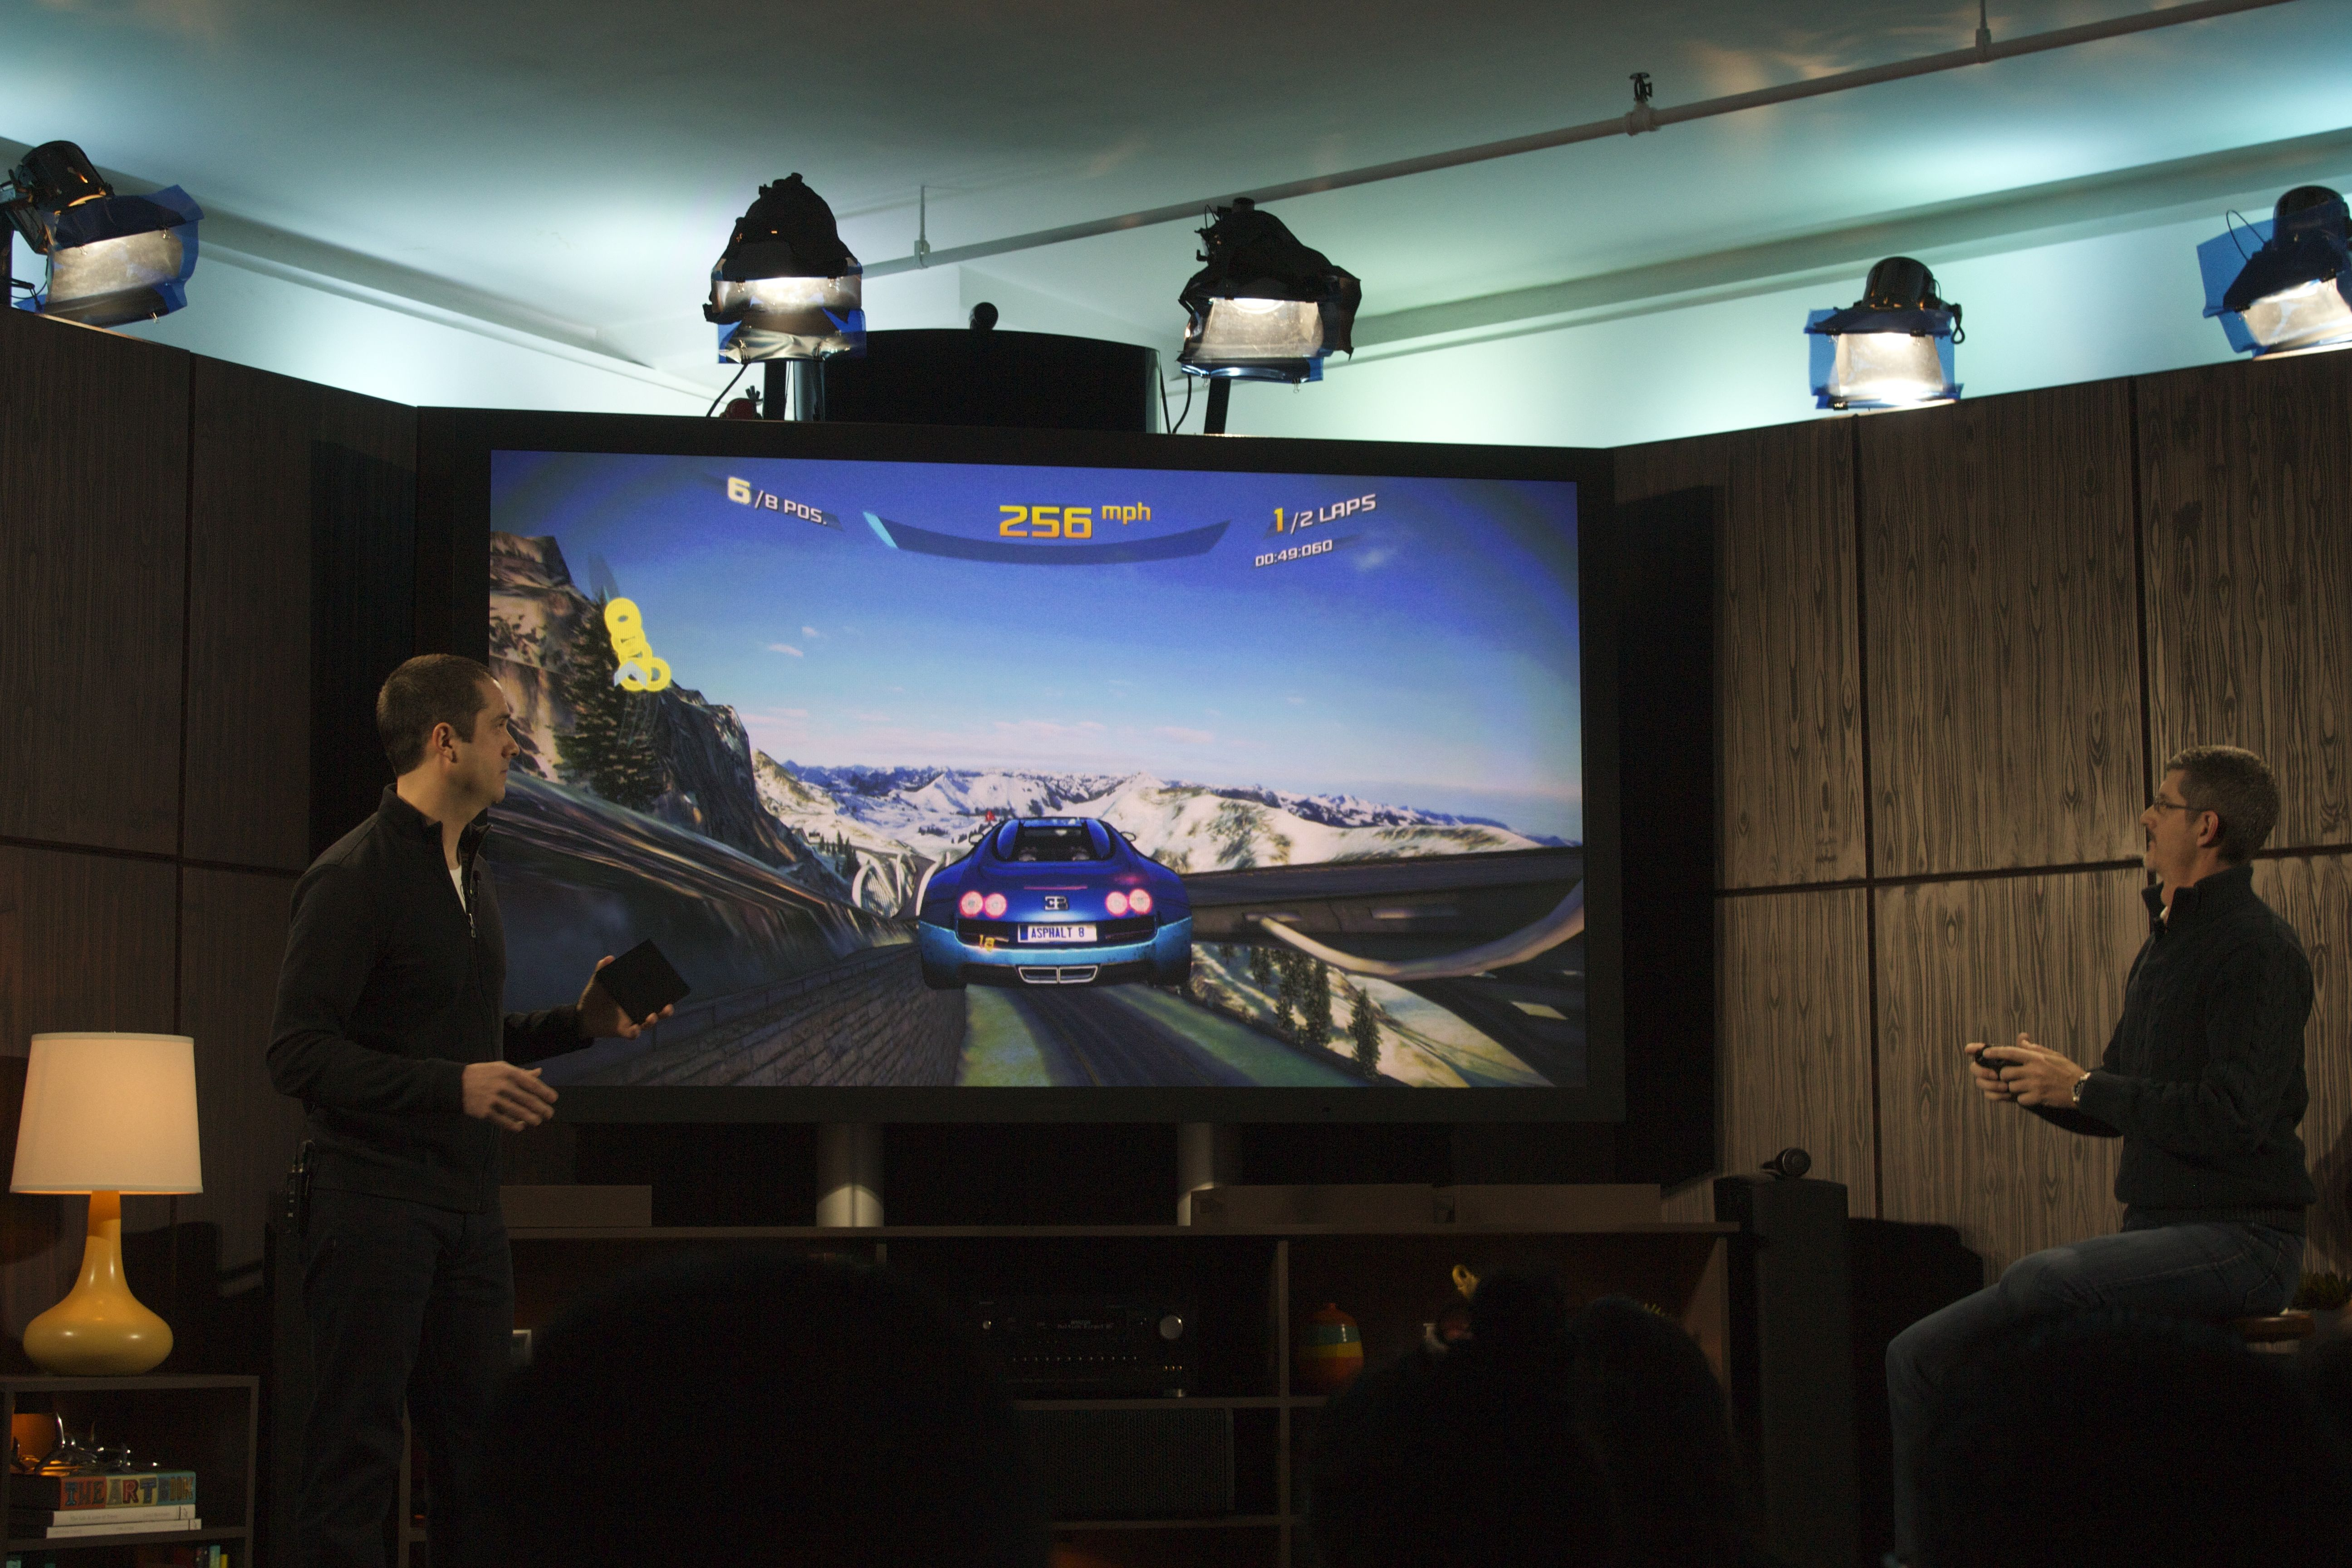 Two execs play a game with the Fire TV.